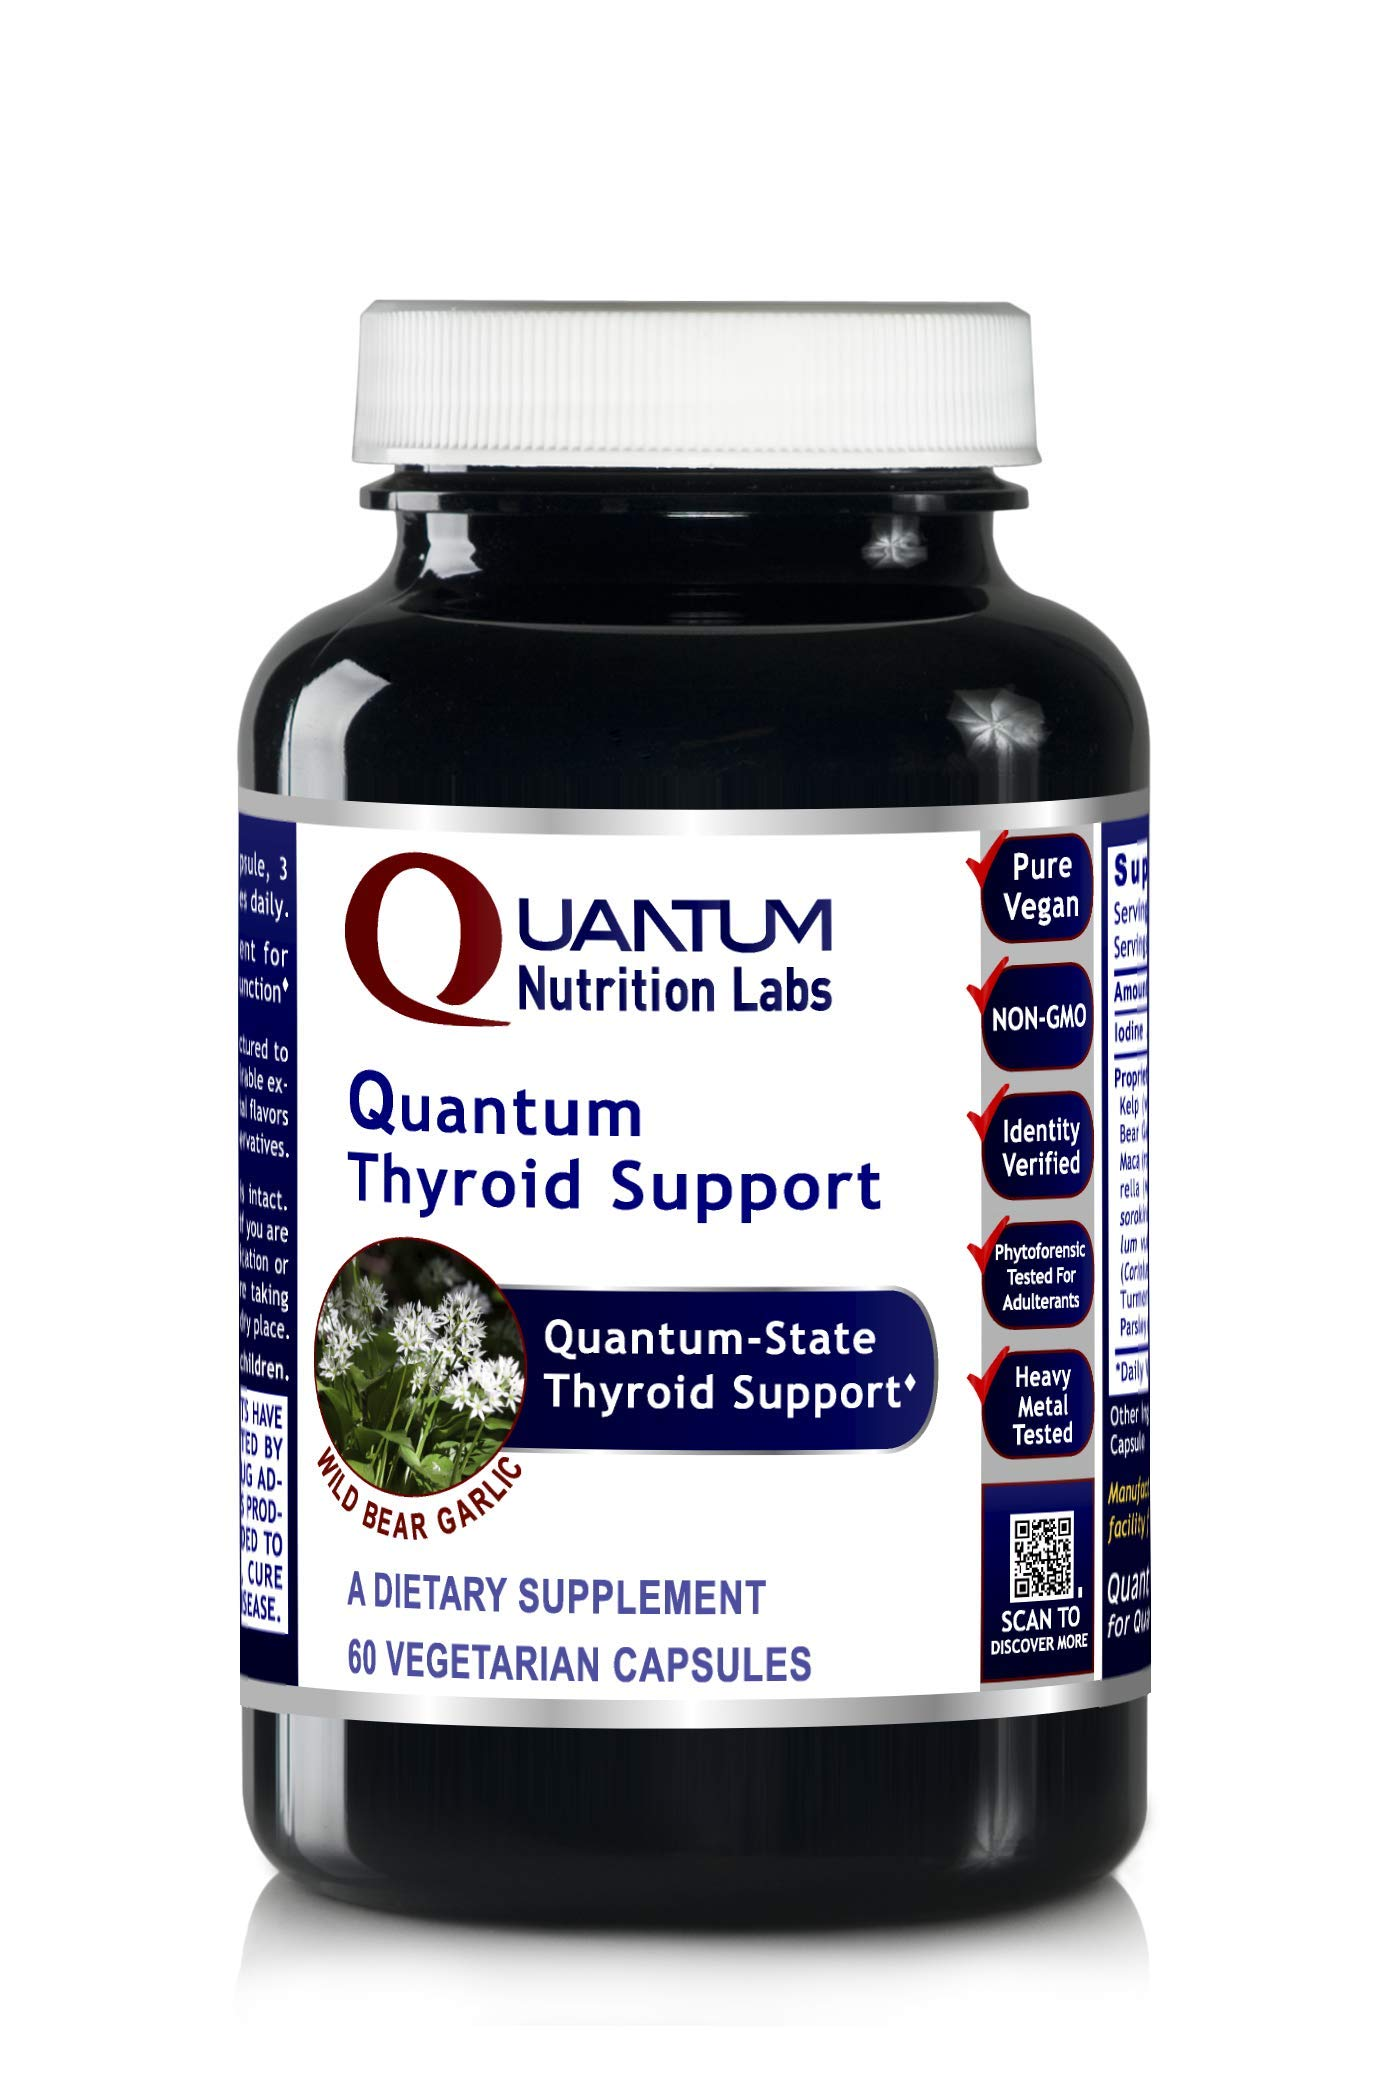 Quantum Thyroid Support, 60 Vegetarian Capsules - Quantum-State Detoxification and Thyroid Support by Quantum Nutrition Labs